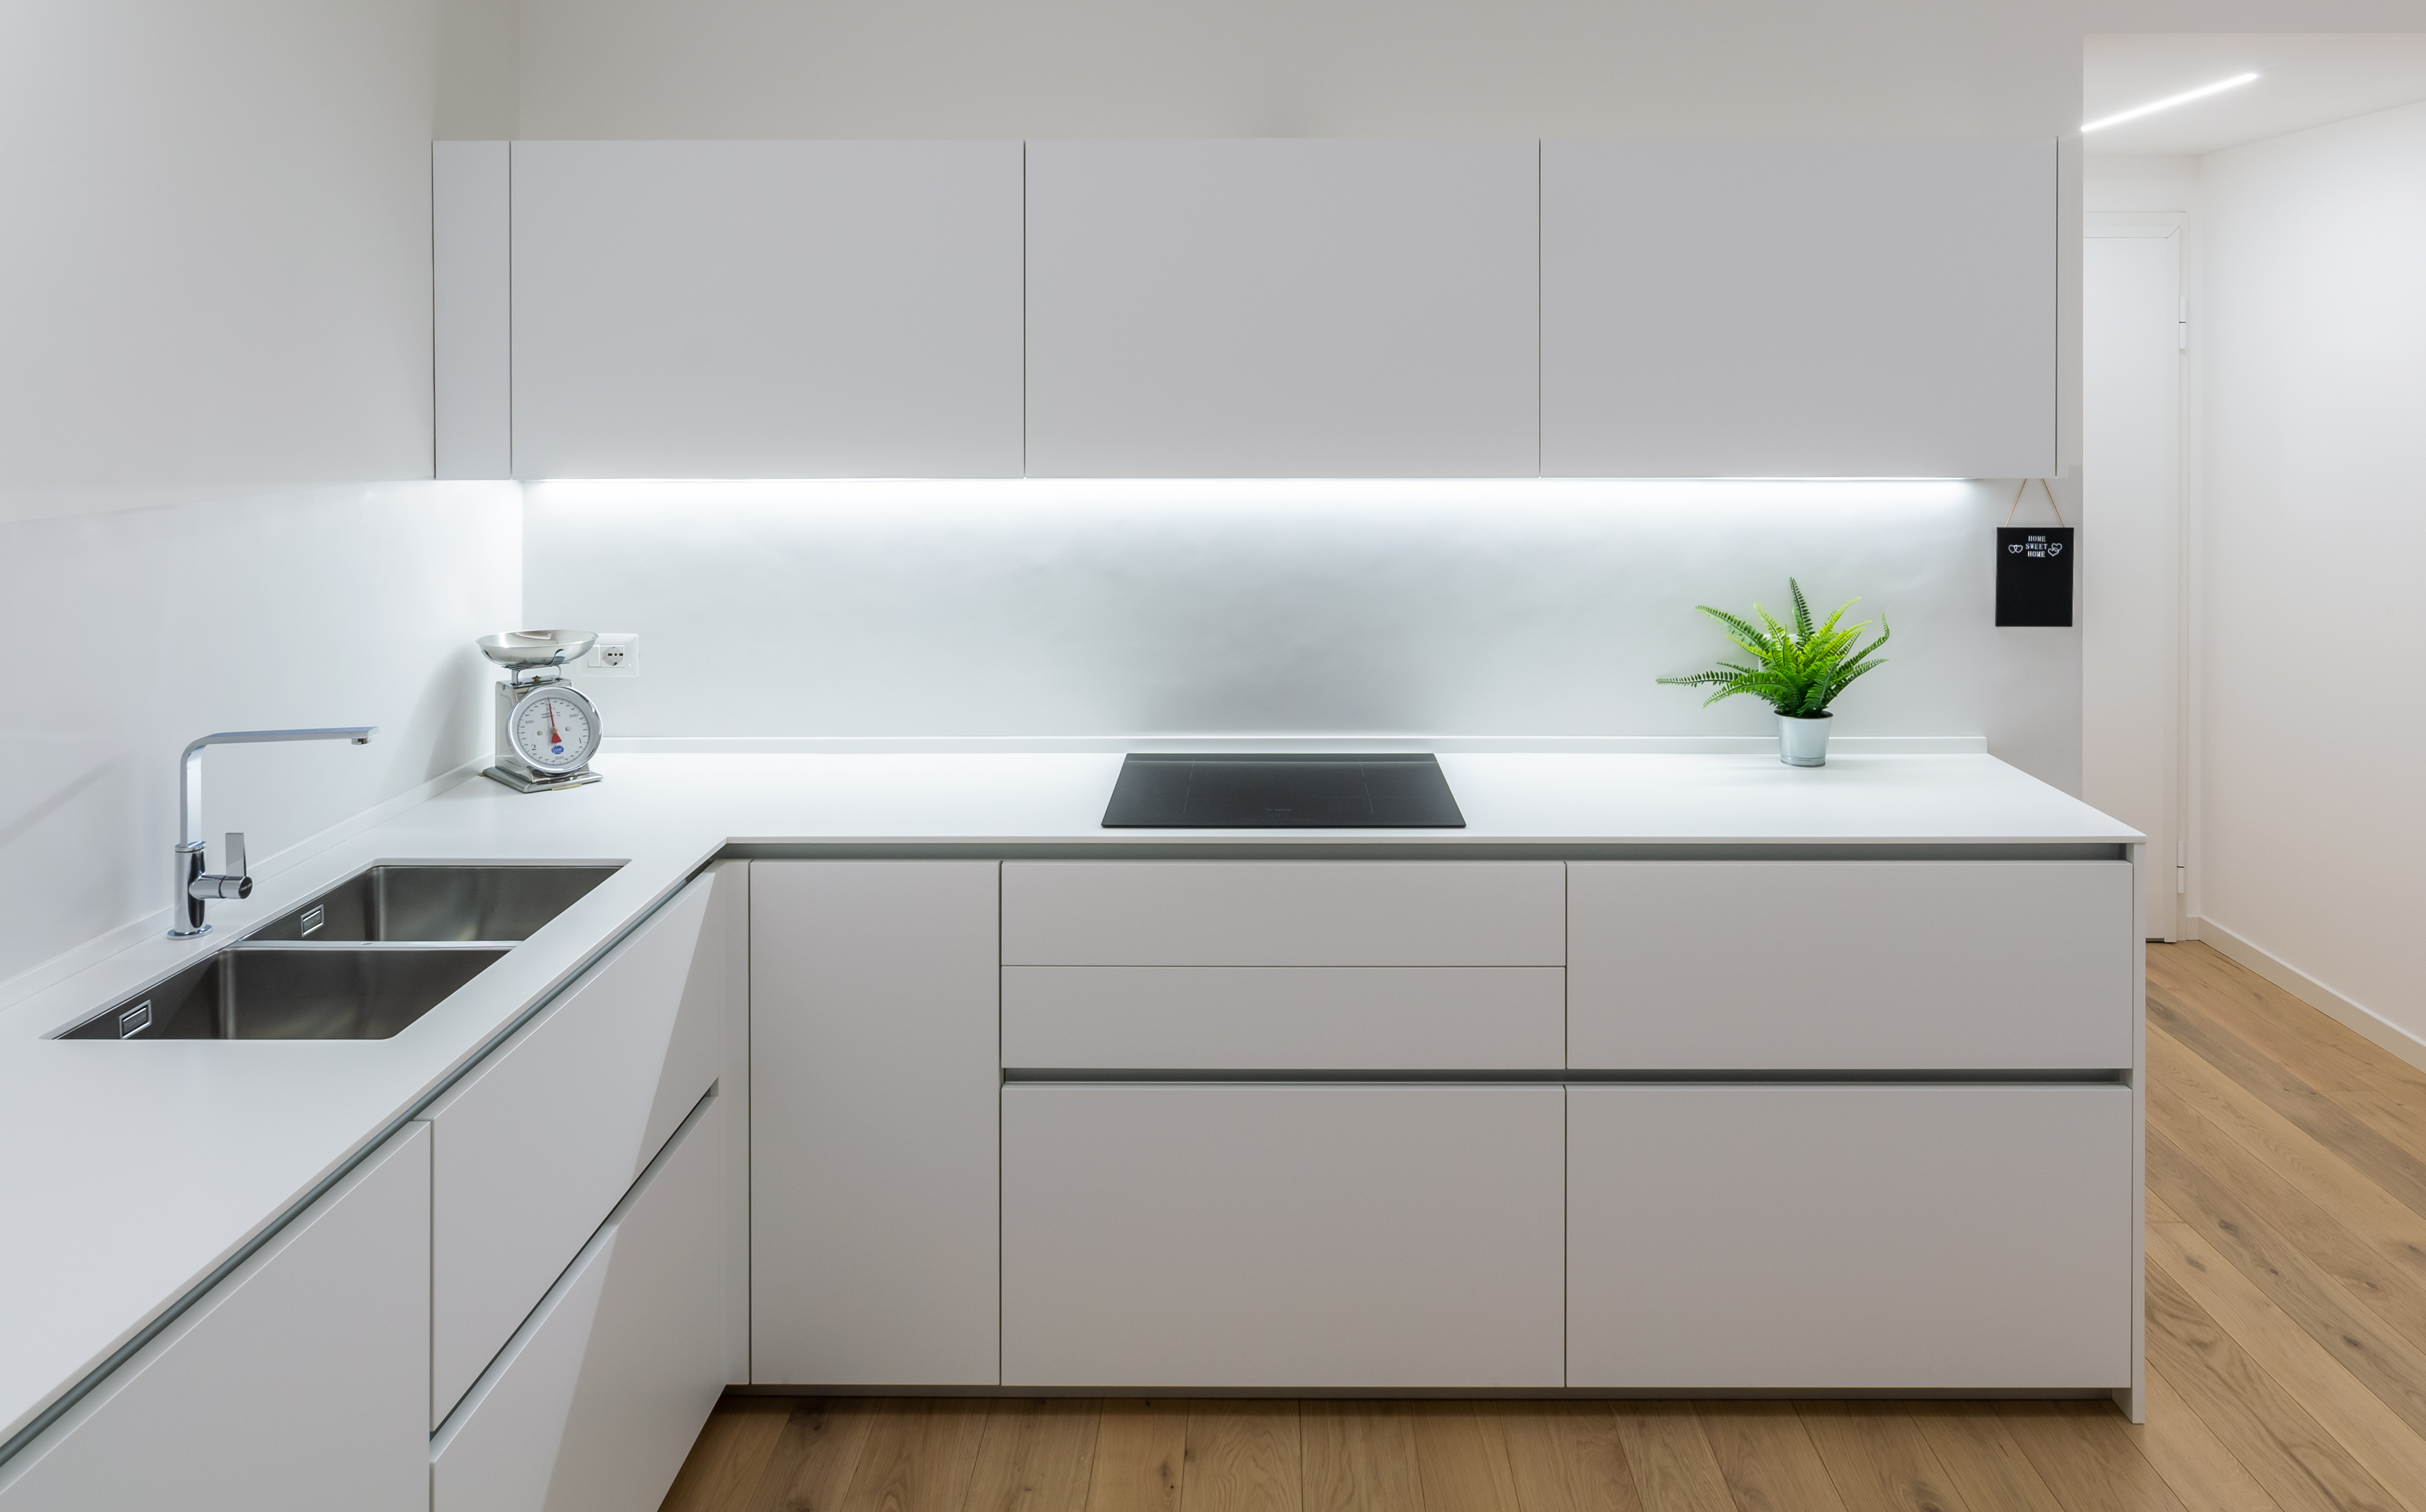 RESIN: A STRONG AND LONG-LASTING MATERIAL FOR YOUR KITCHEN